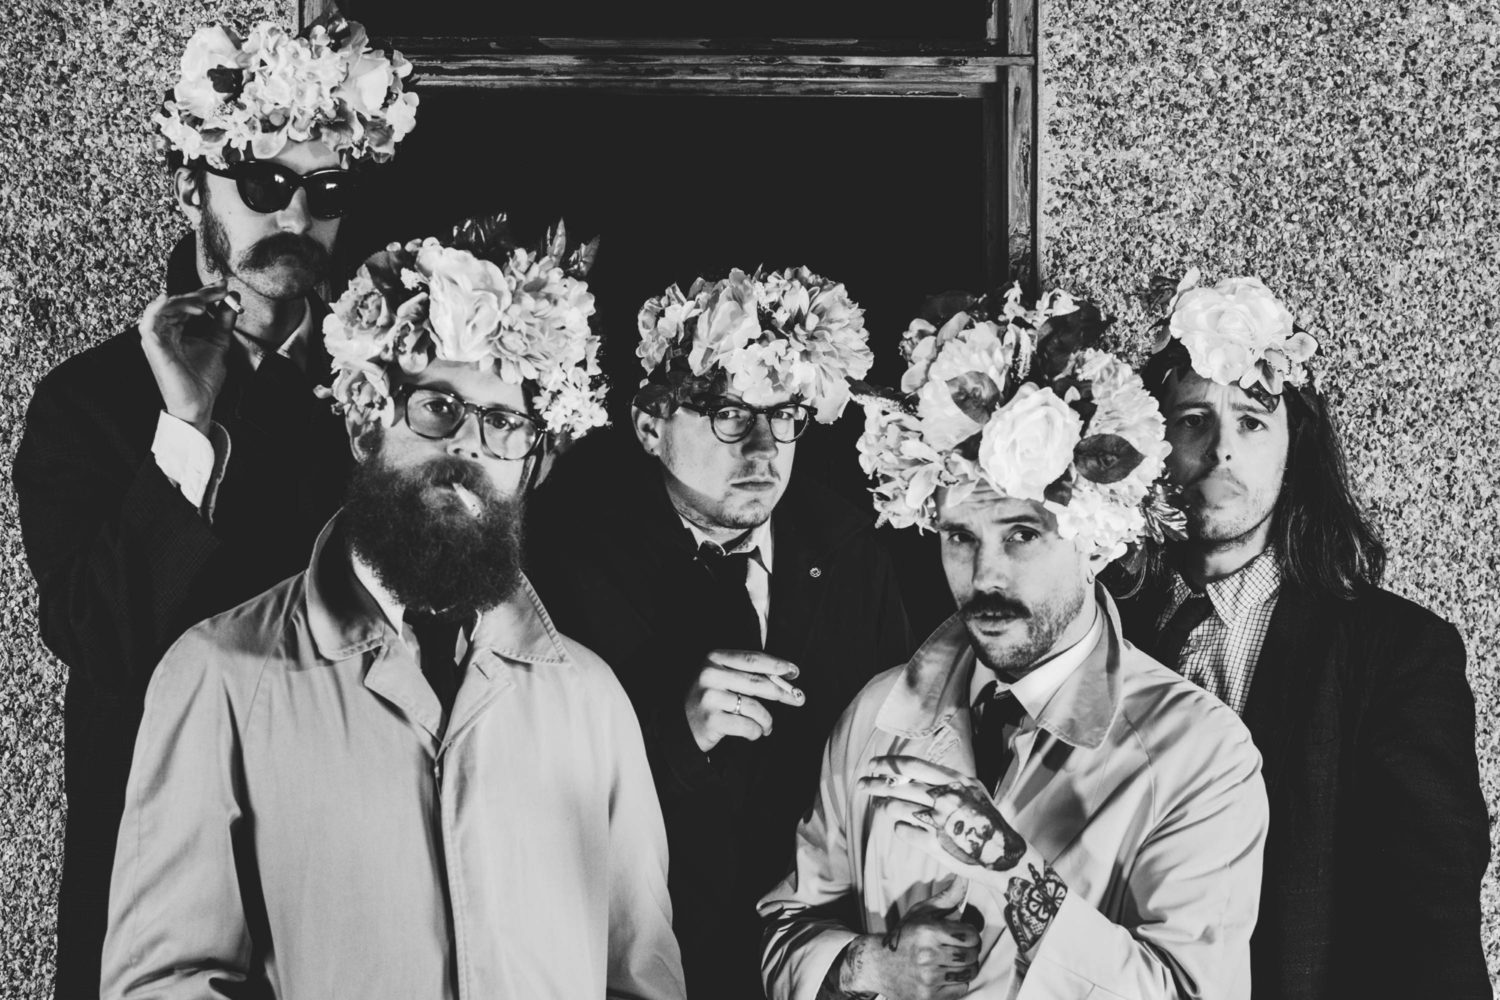 IDLES announce new album 'Joy As An Act Of Resistance', share video for new track 'Danny Nedelko'